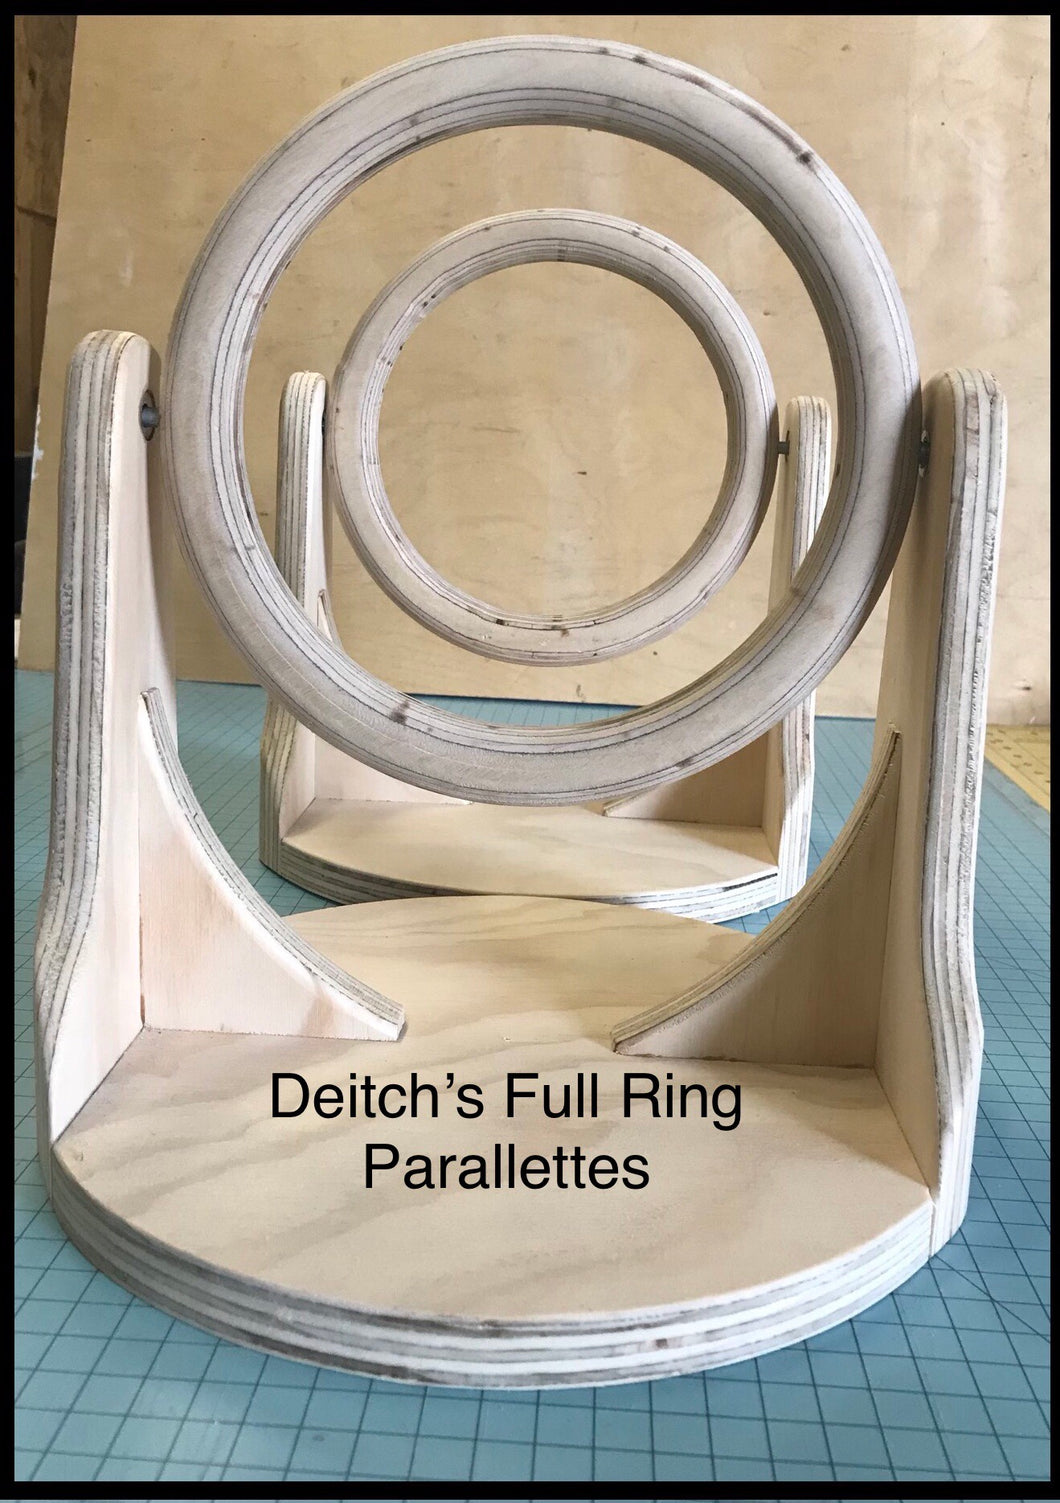 Deitch's Full Ring Parallettes